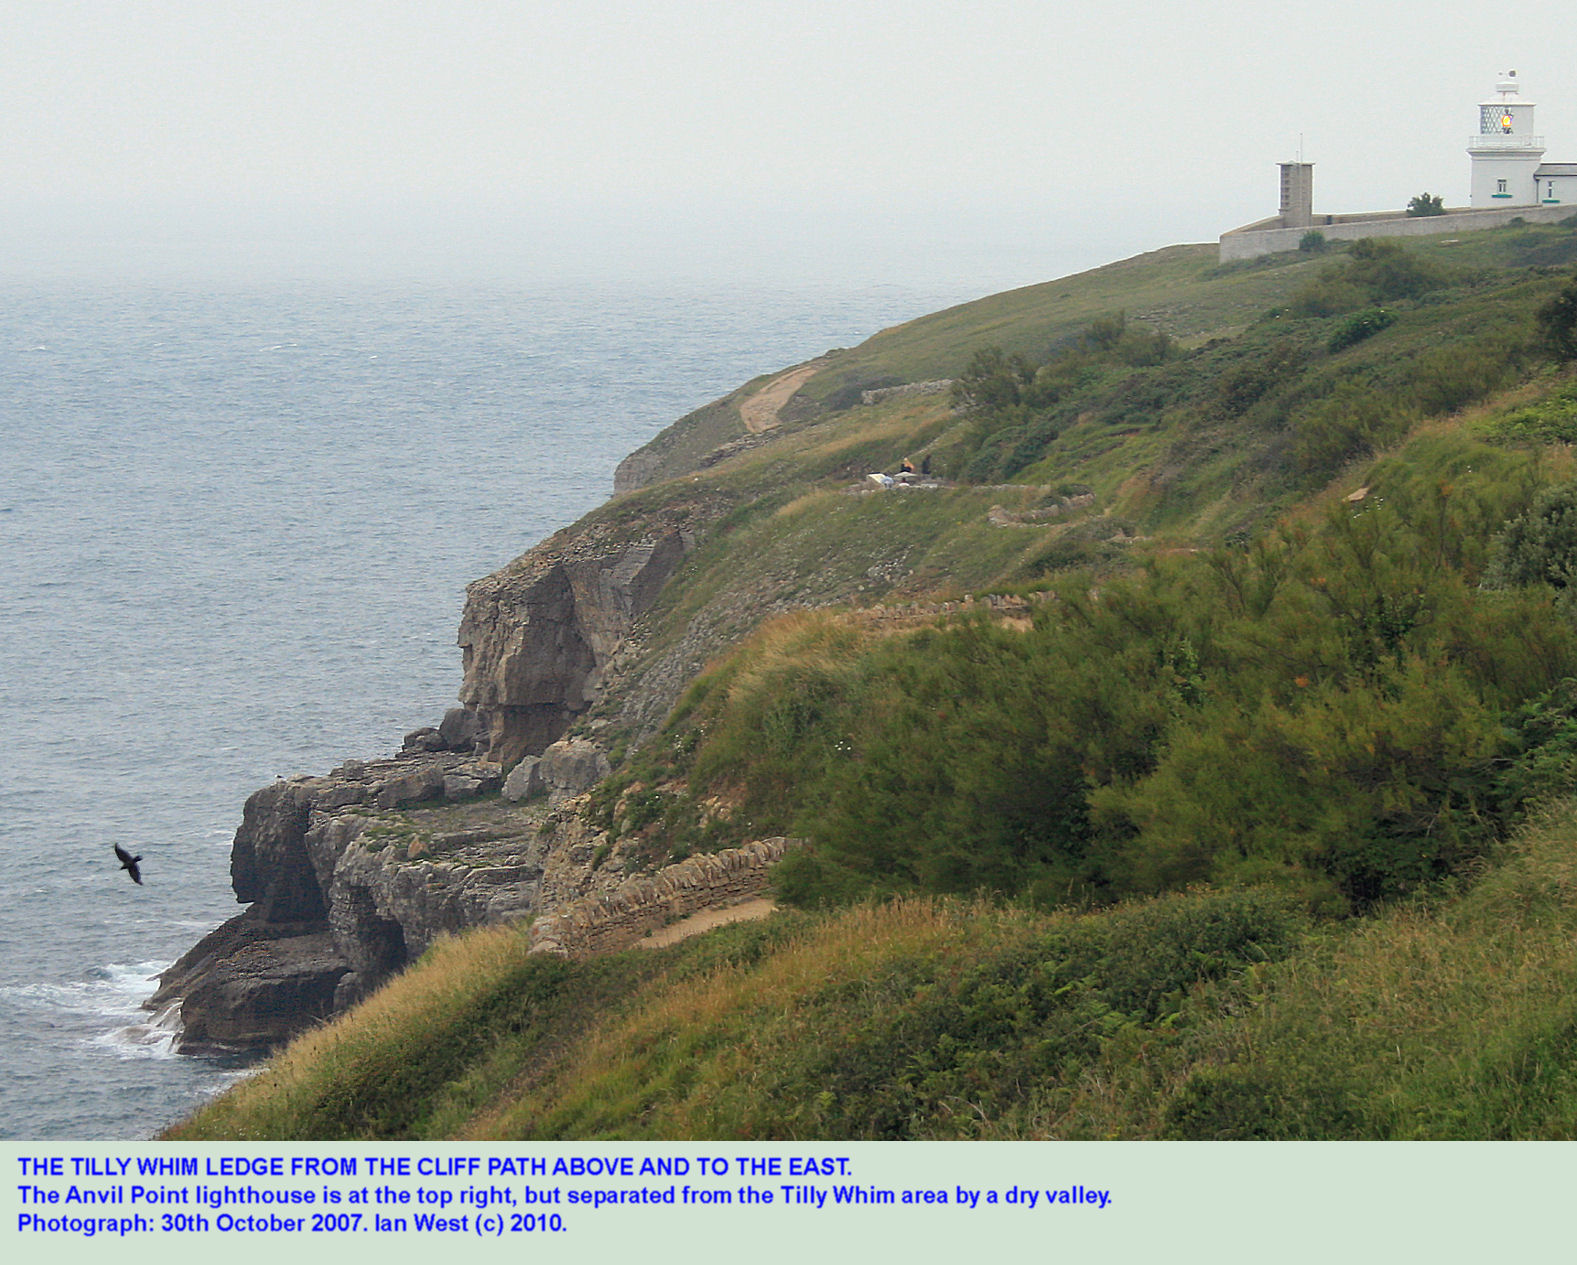 The Tilly Whim quarrying ledge from the cliff path to the east, near Durlston Head, Swanage, Dorset